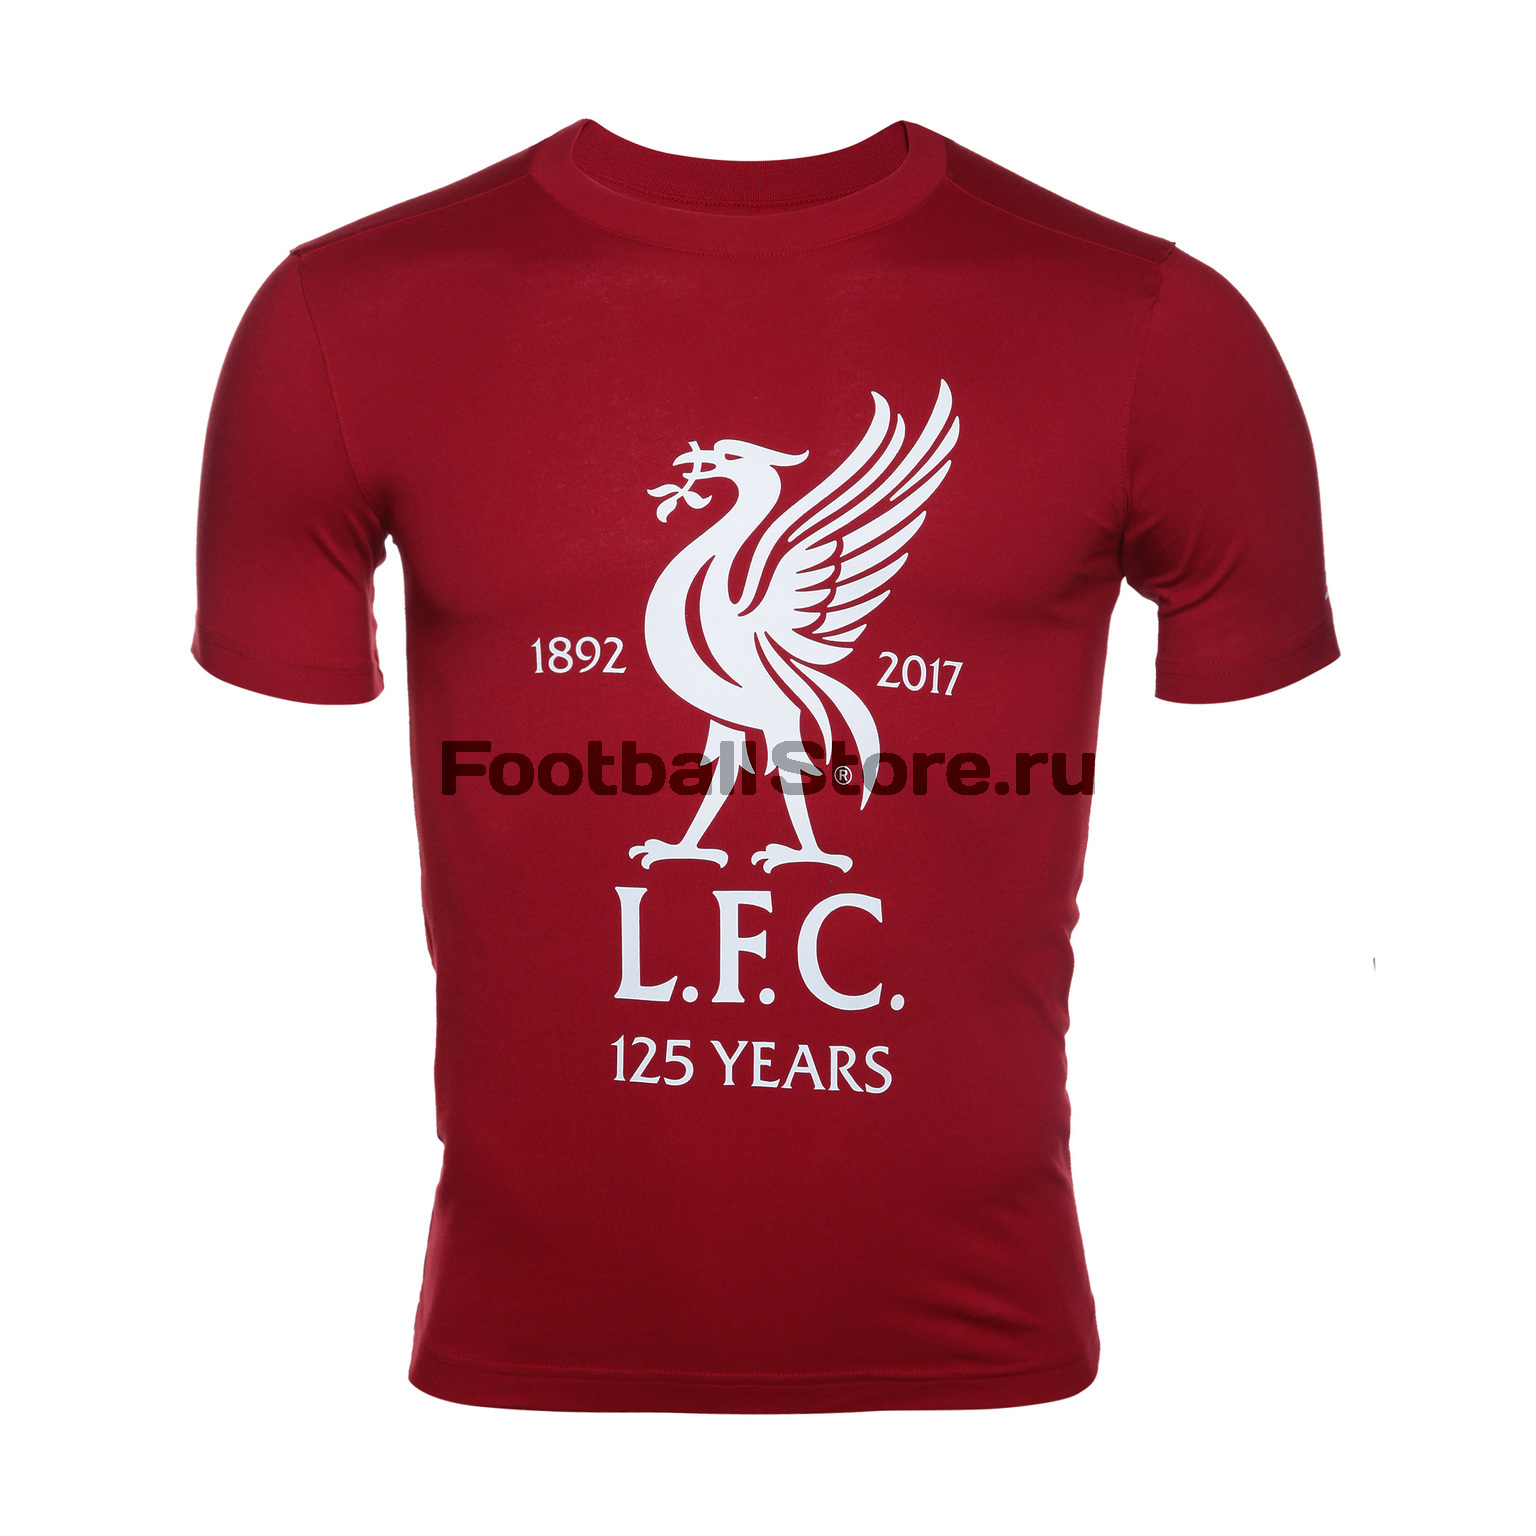 Футболка New Balance Liverpool Graphic AMT71595/RDP футболка детская new balance nk9e52105u